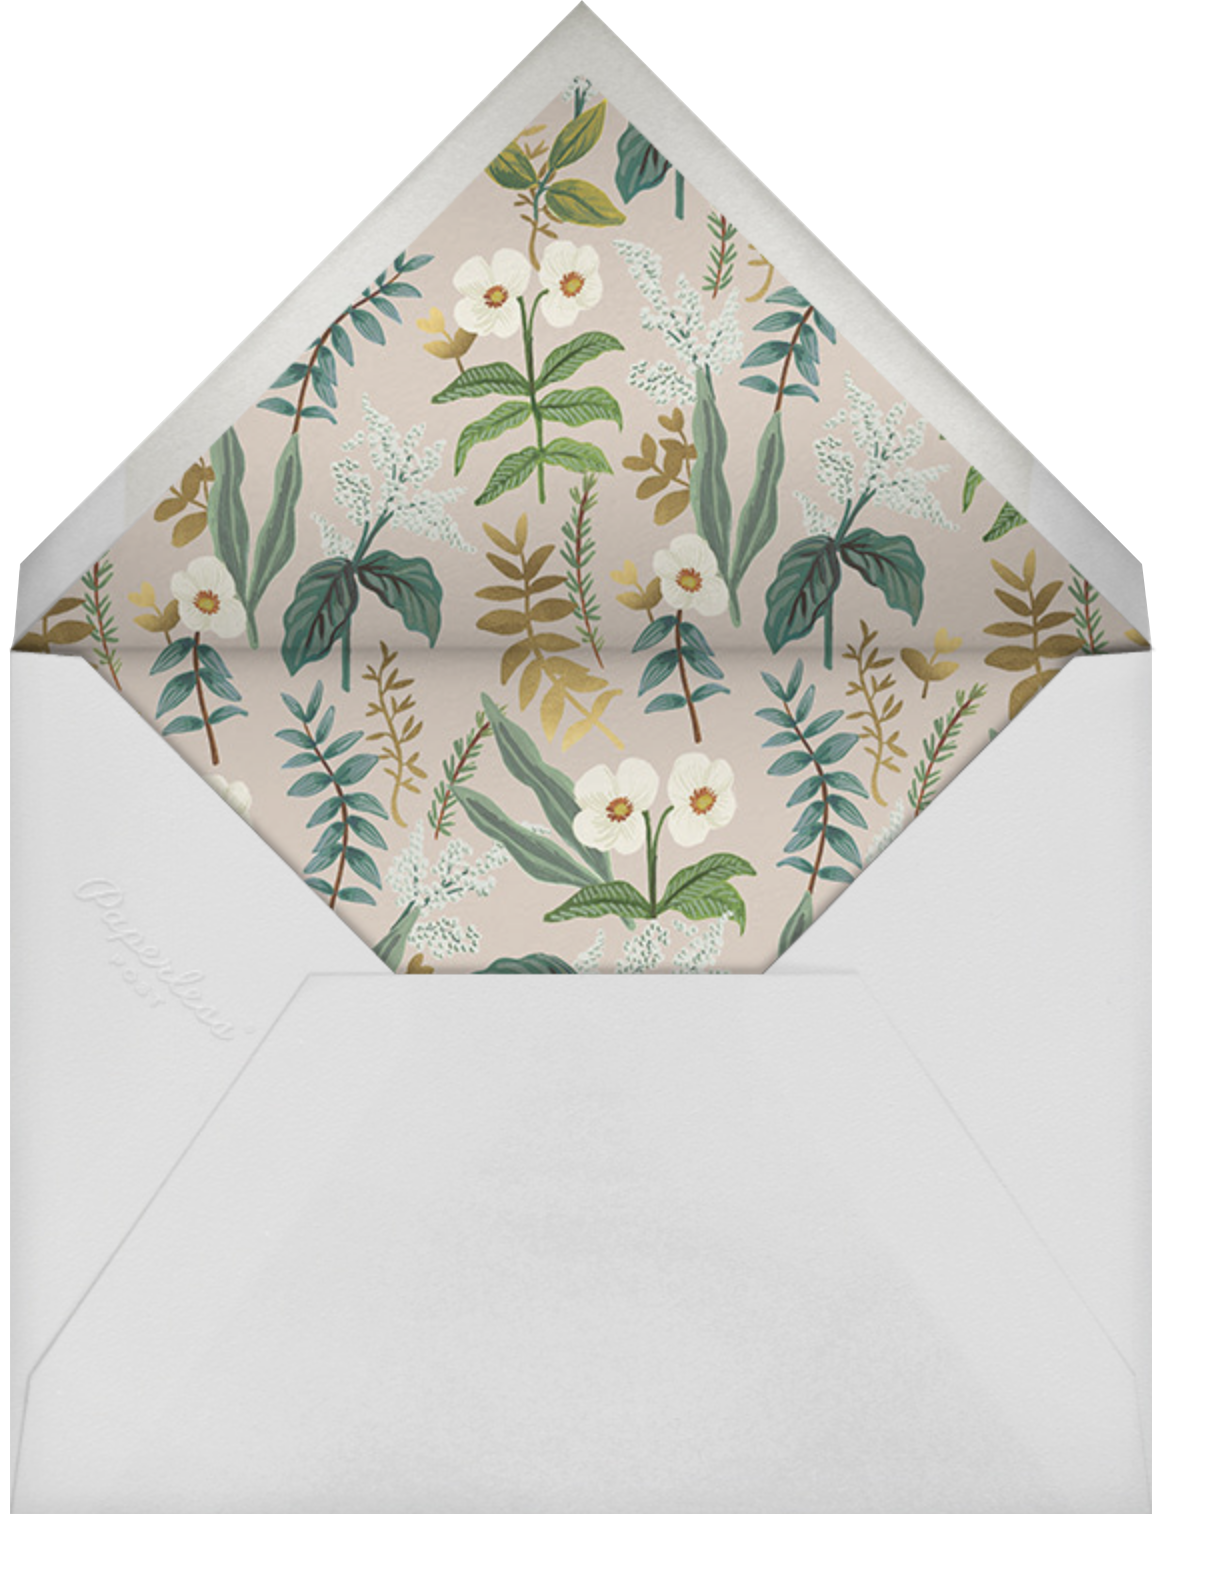 Meadow Garland - Rifle Paper Co. - Dinner party - envelope back